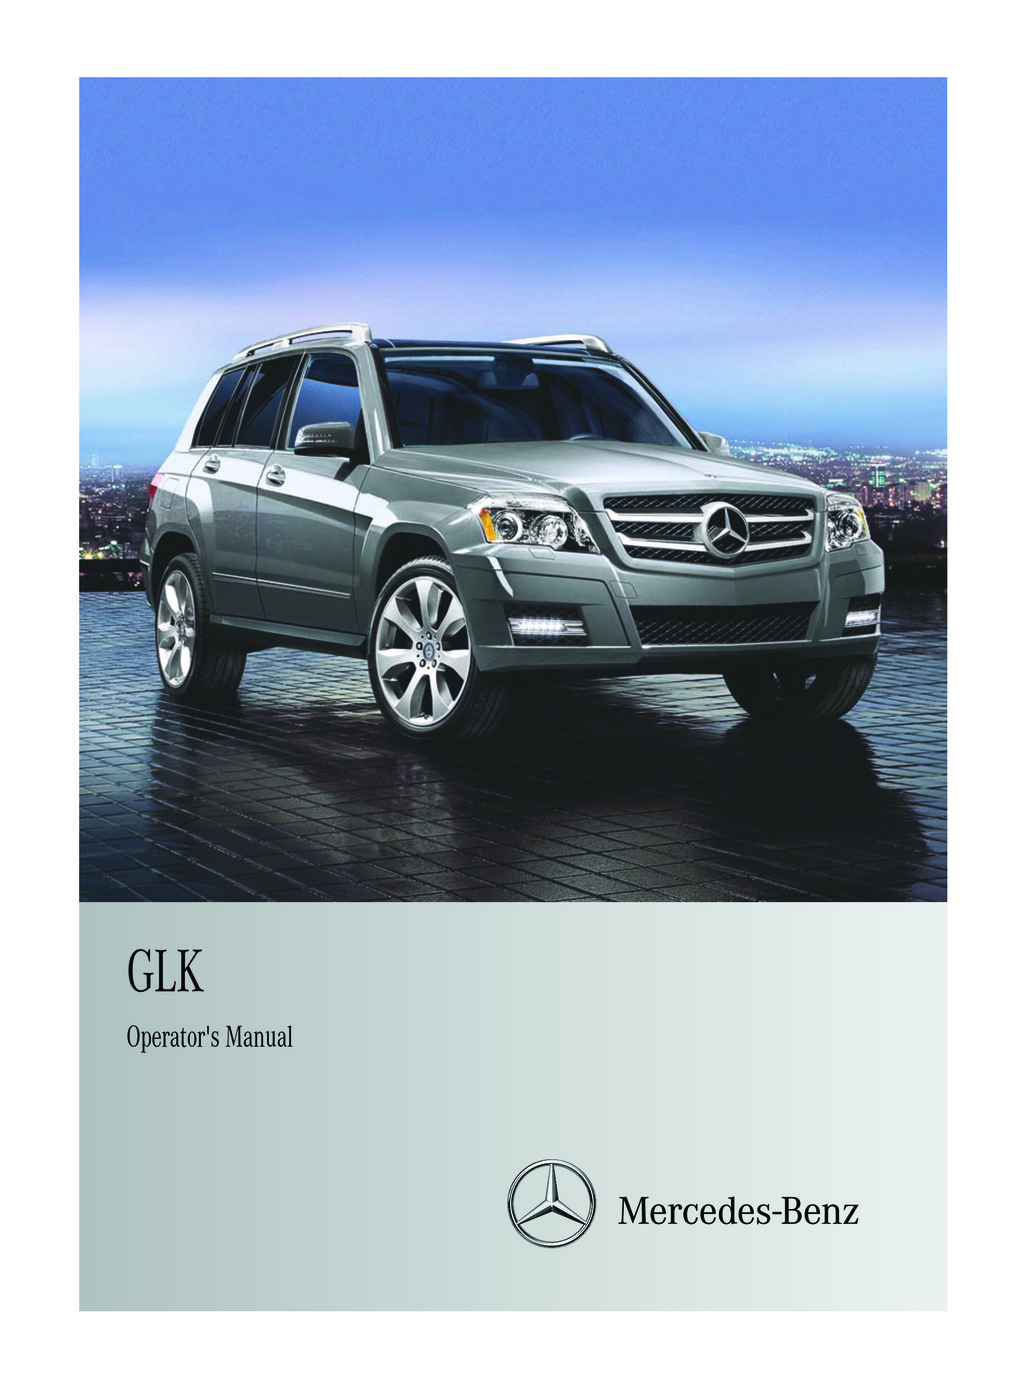 2012 Mercedes-Benz GLK Class owners manual